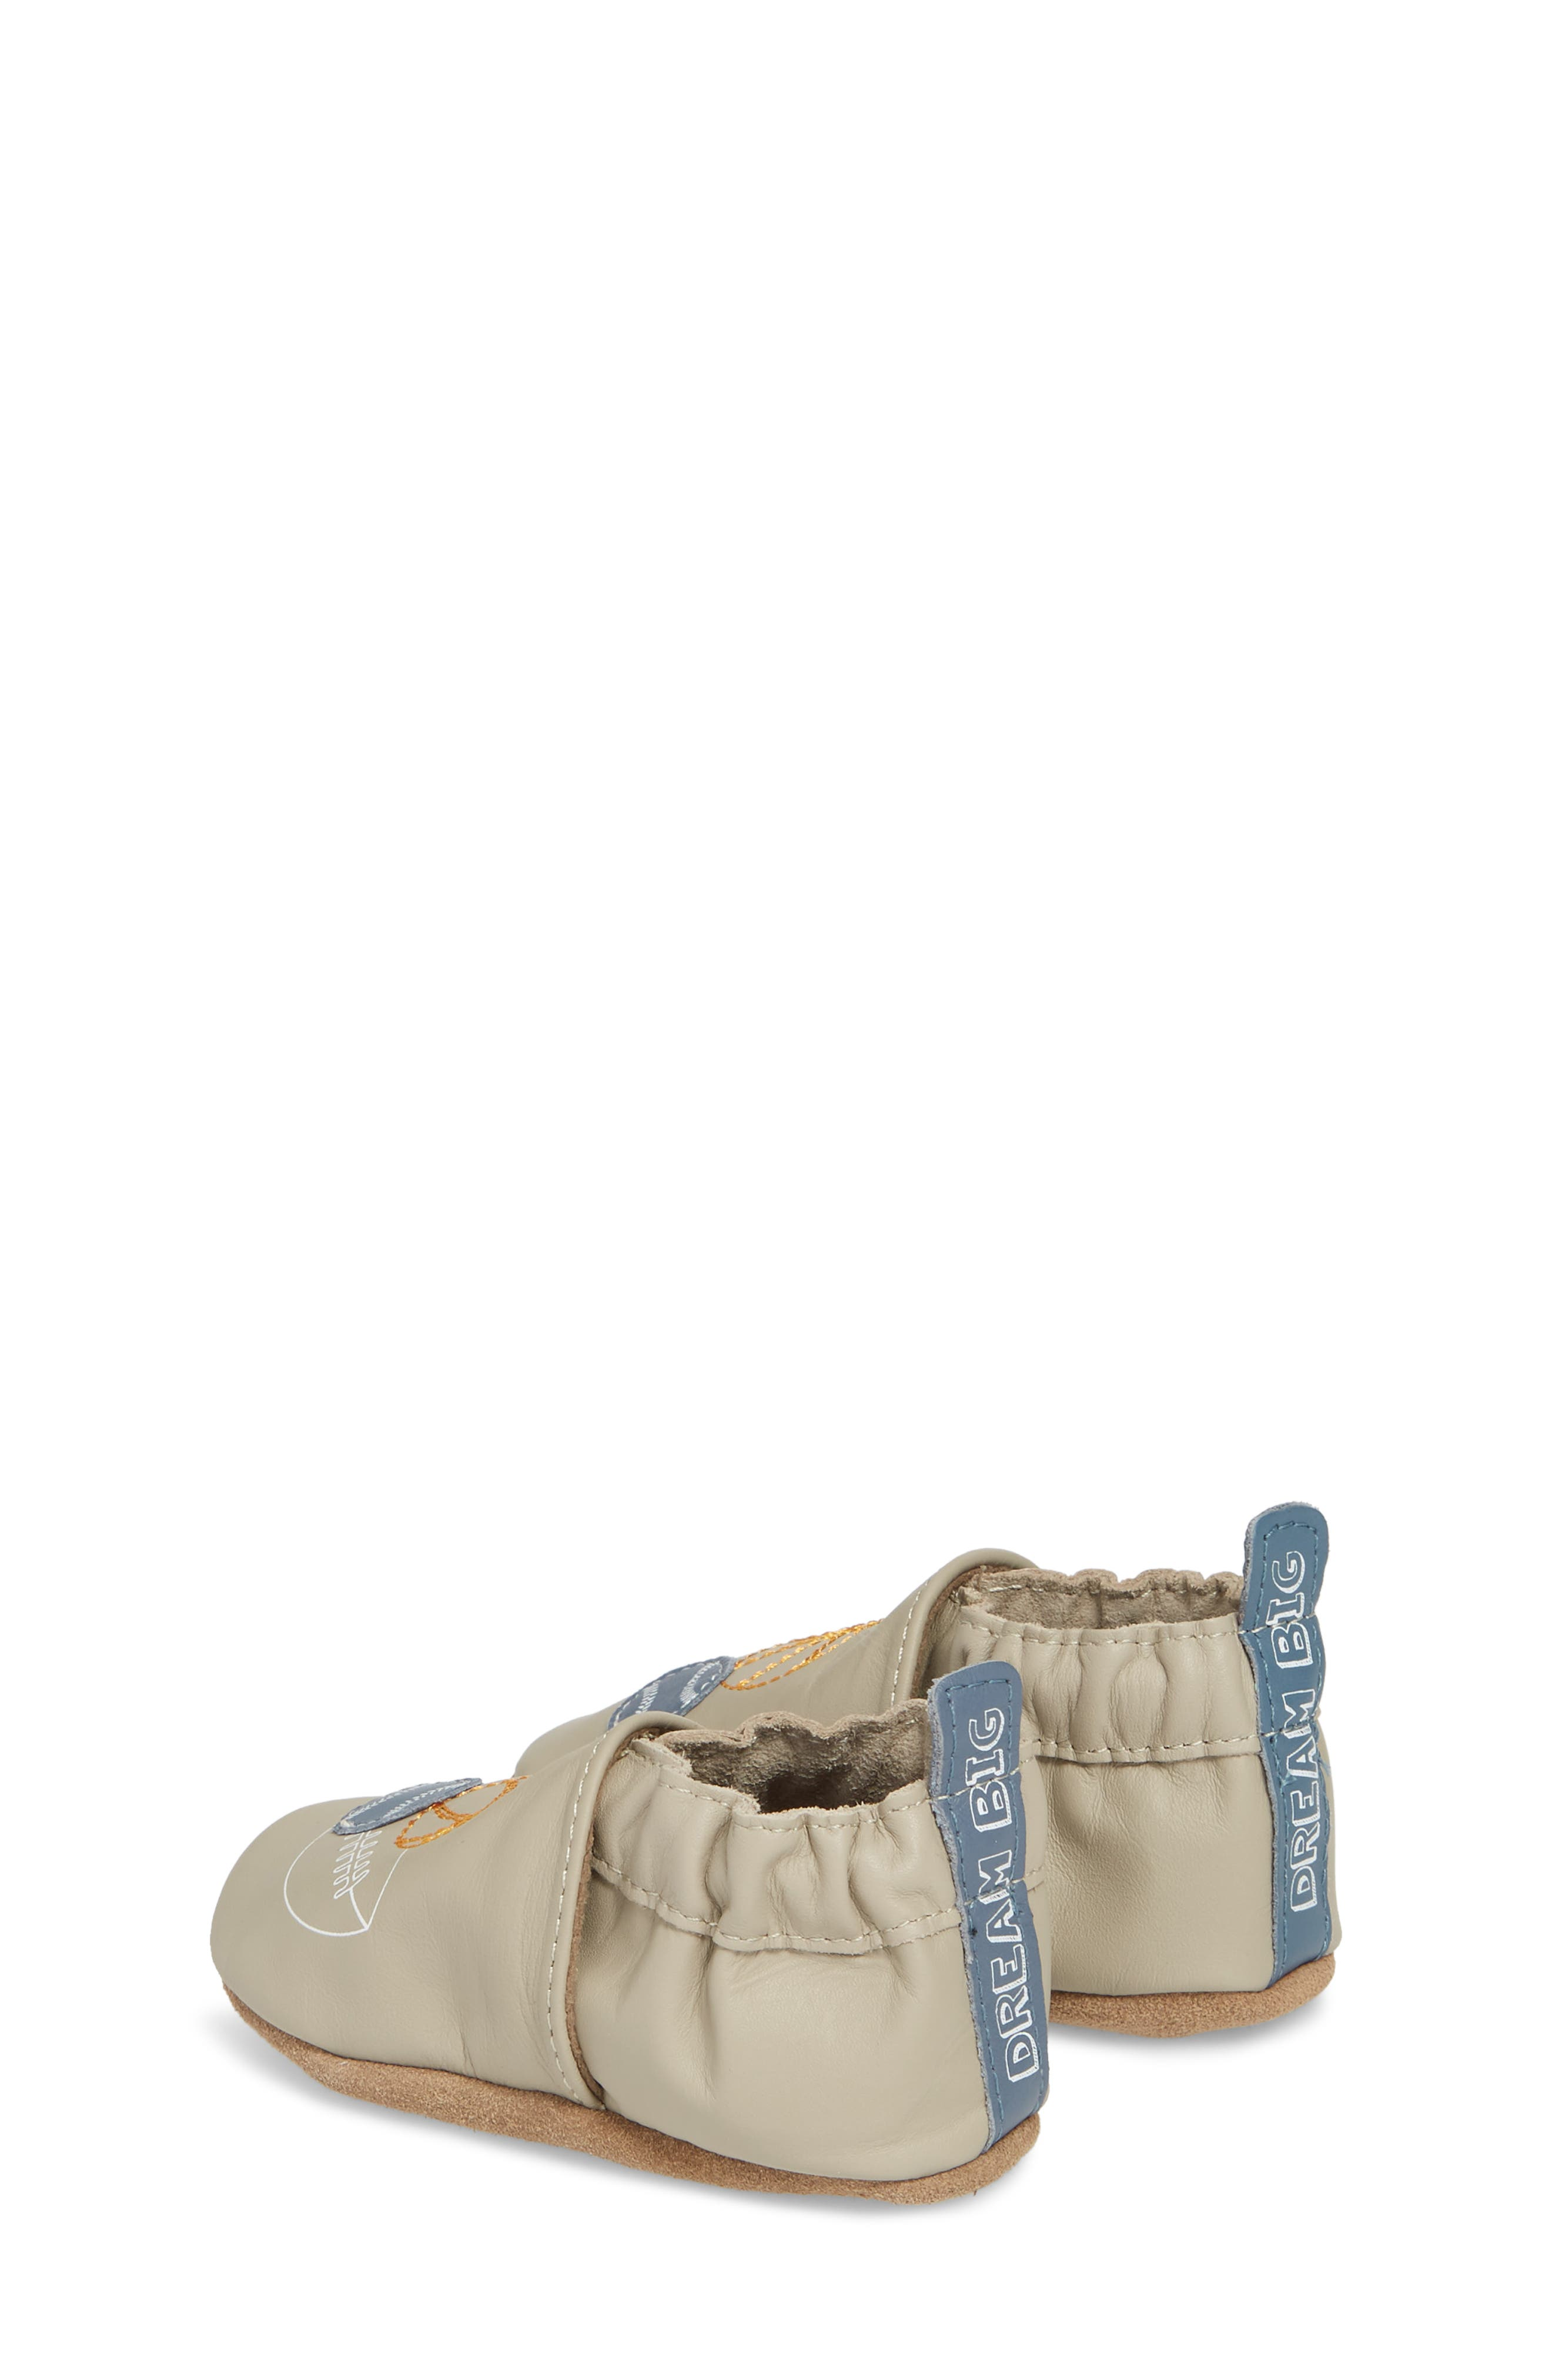 Dream Big Moccasin Crib Shoe,                             Alternate thumbnail 2, color,                             TAUPE